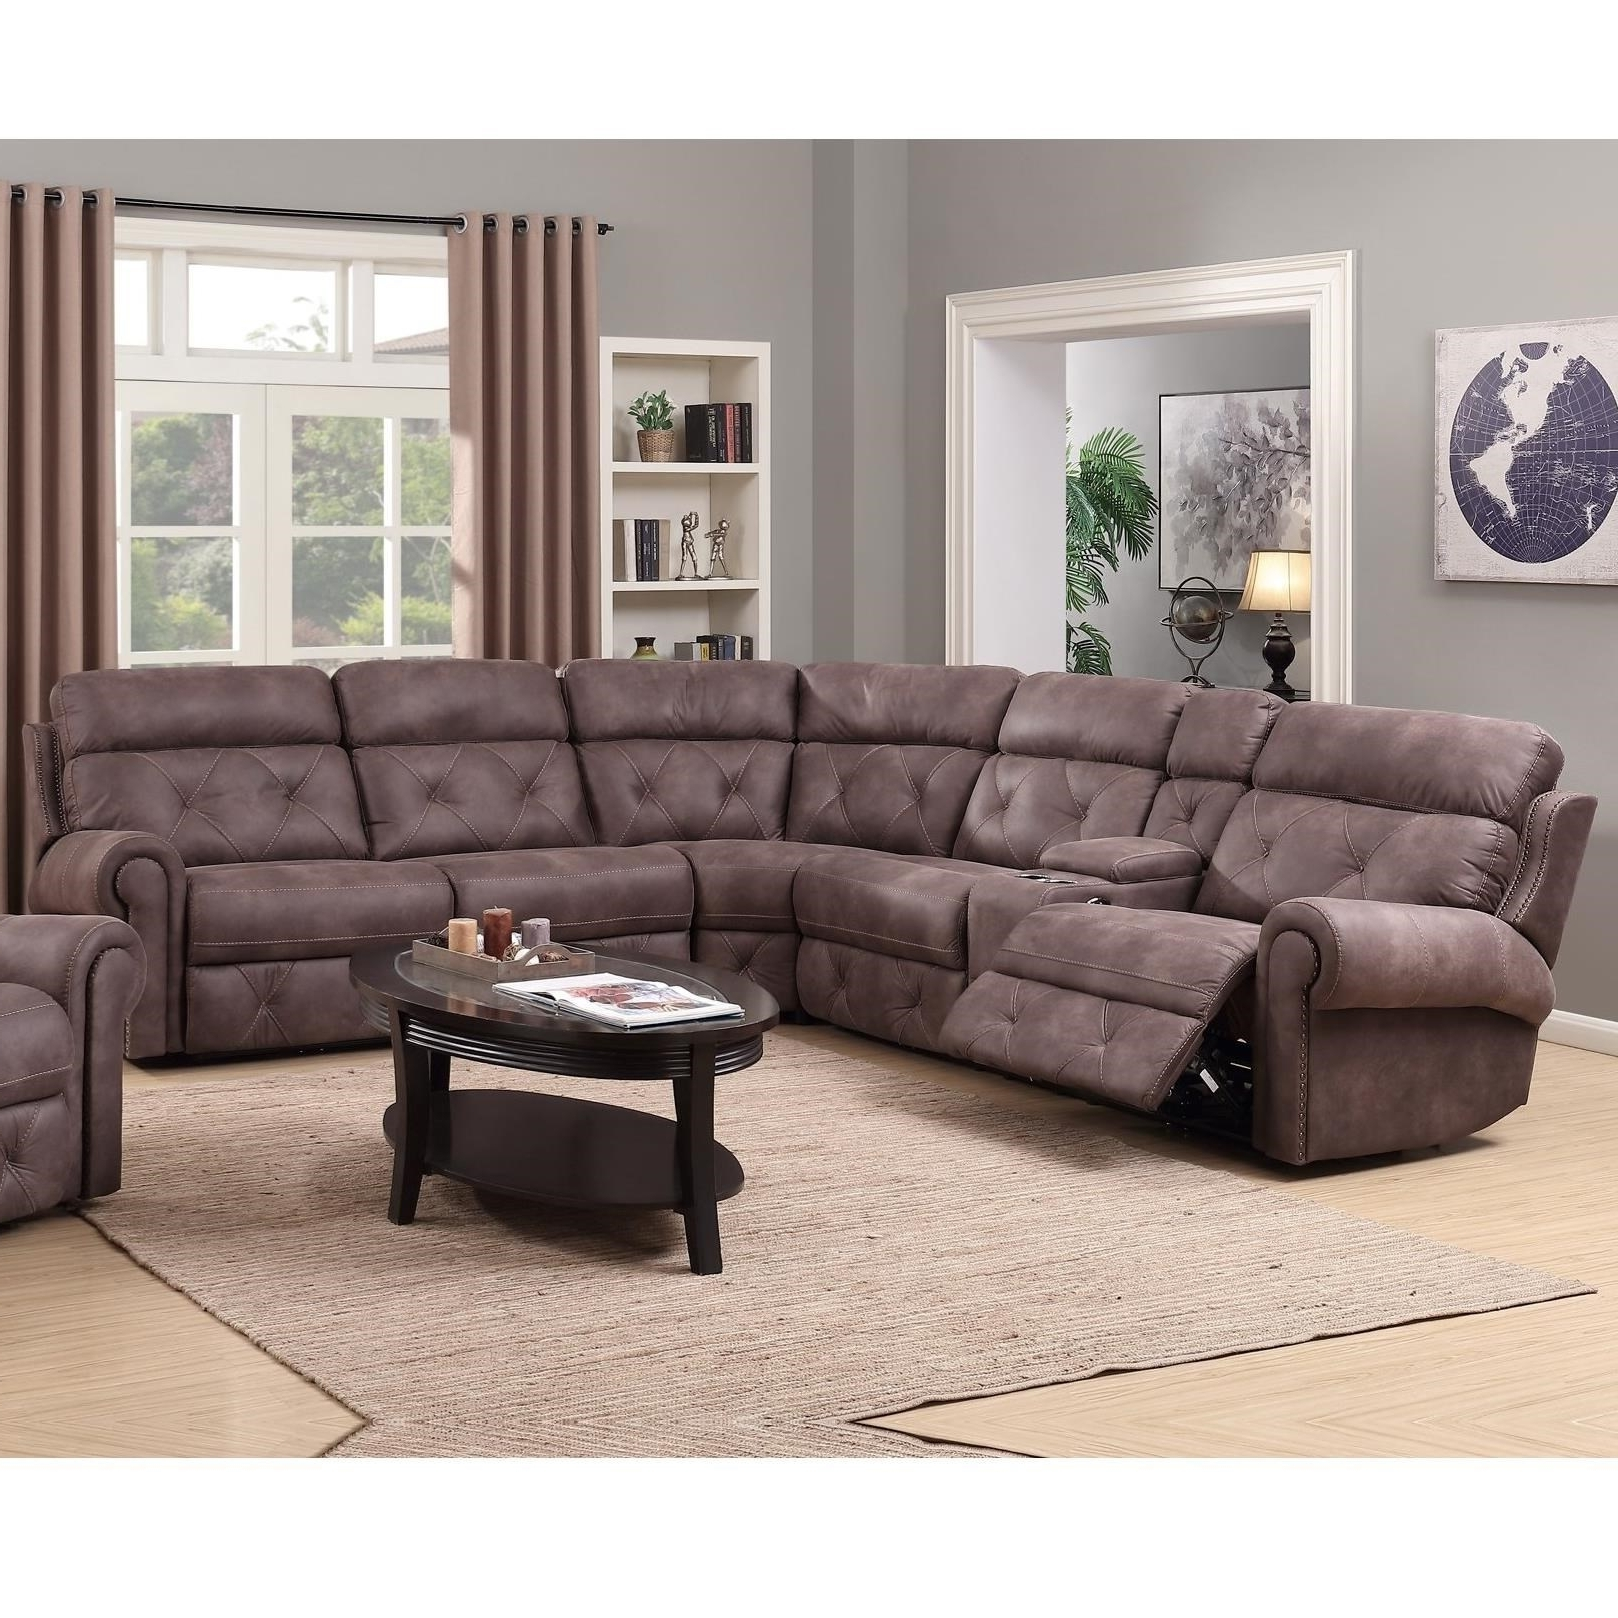 Murfreesboro Tn Sectional Sofas Pertaining To Trendy Furniture: Ashley Furniture N Nashville Furniture Furniture Stores (View 9 of 20)